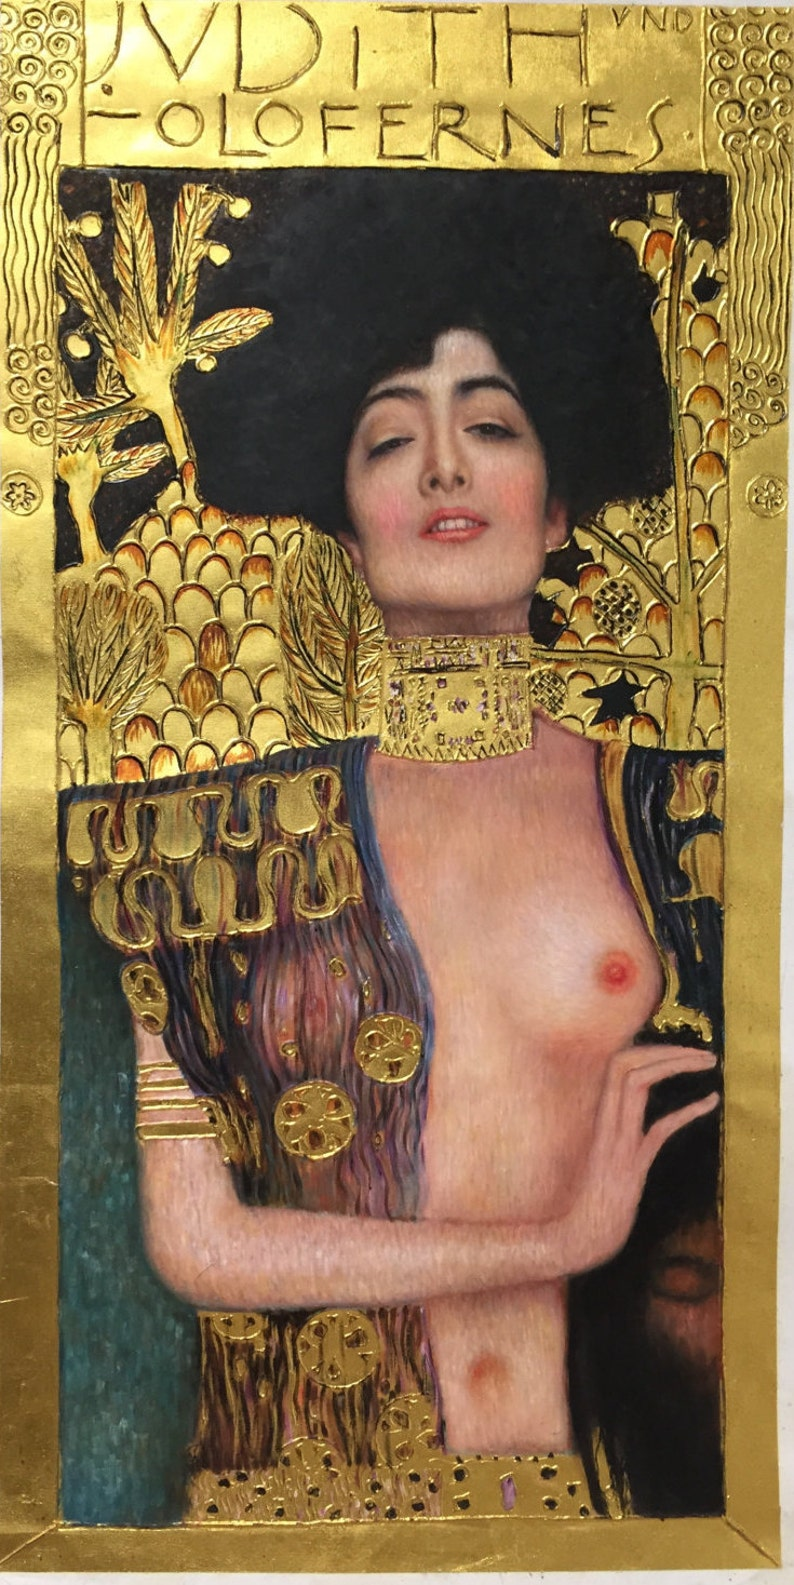 Gustav Klimt Judith and the Head of Holofernes reproduction image 0